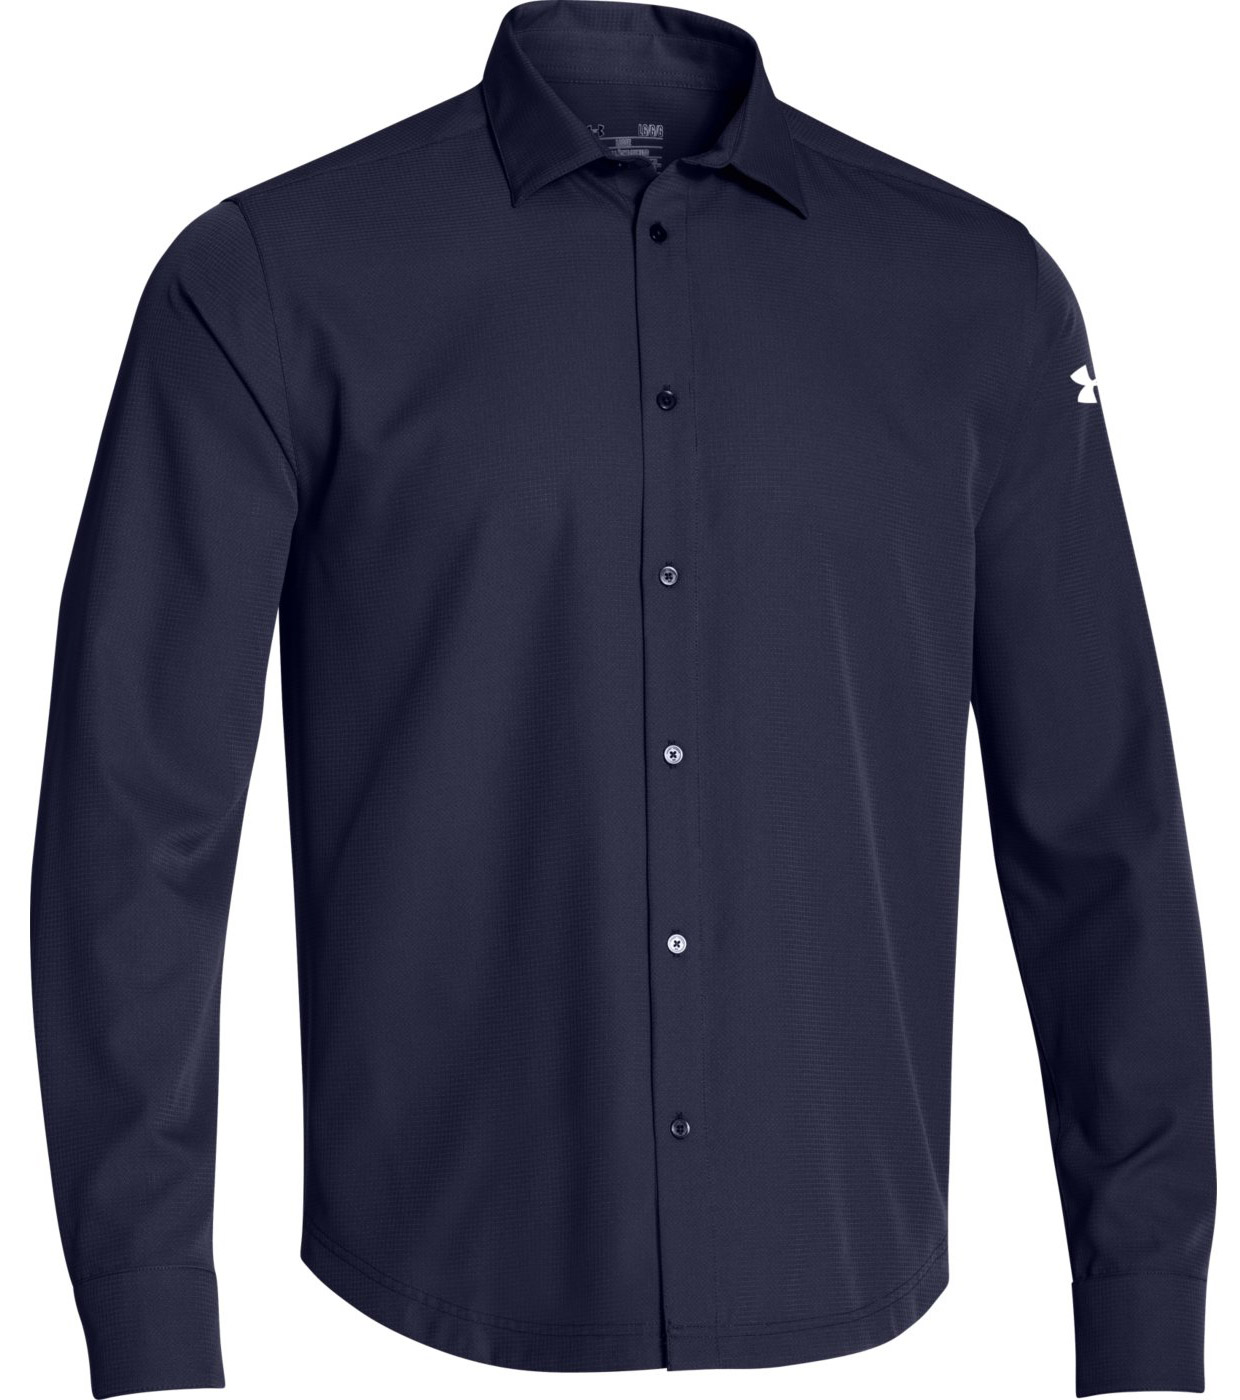 Under armour ultimate men 39 s button down long sleeve shirt for Custom sun protection shirts